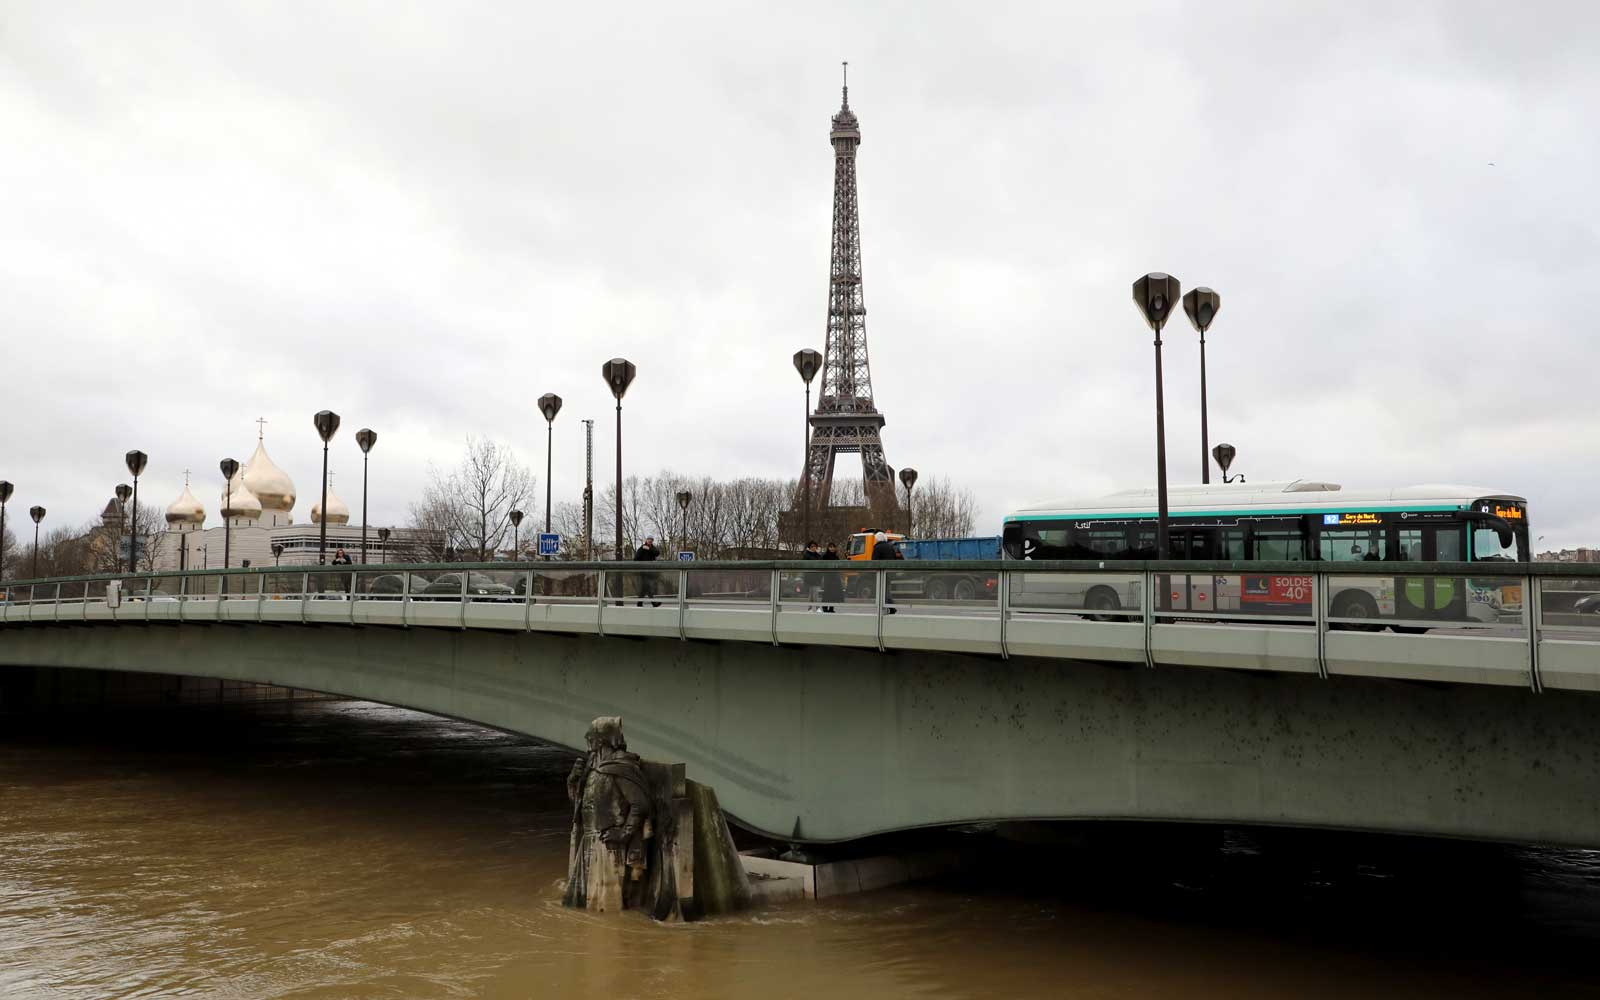 Traffic moves across the Pont D'Alma bridge past the Eiffel Tower and the Holy Trinity Cathedral, as the Zouave statue stands partially submerged   after the River Seine burst its banks in Paris on January 24, 2018.